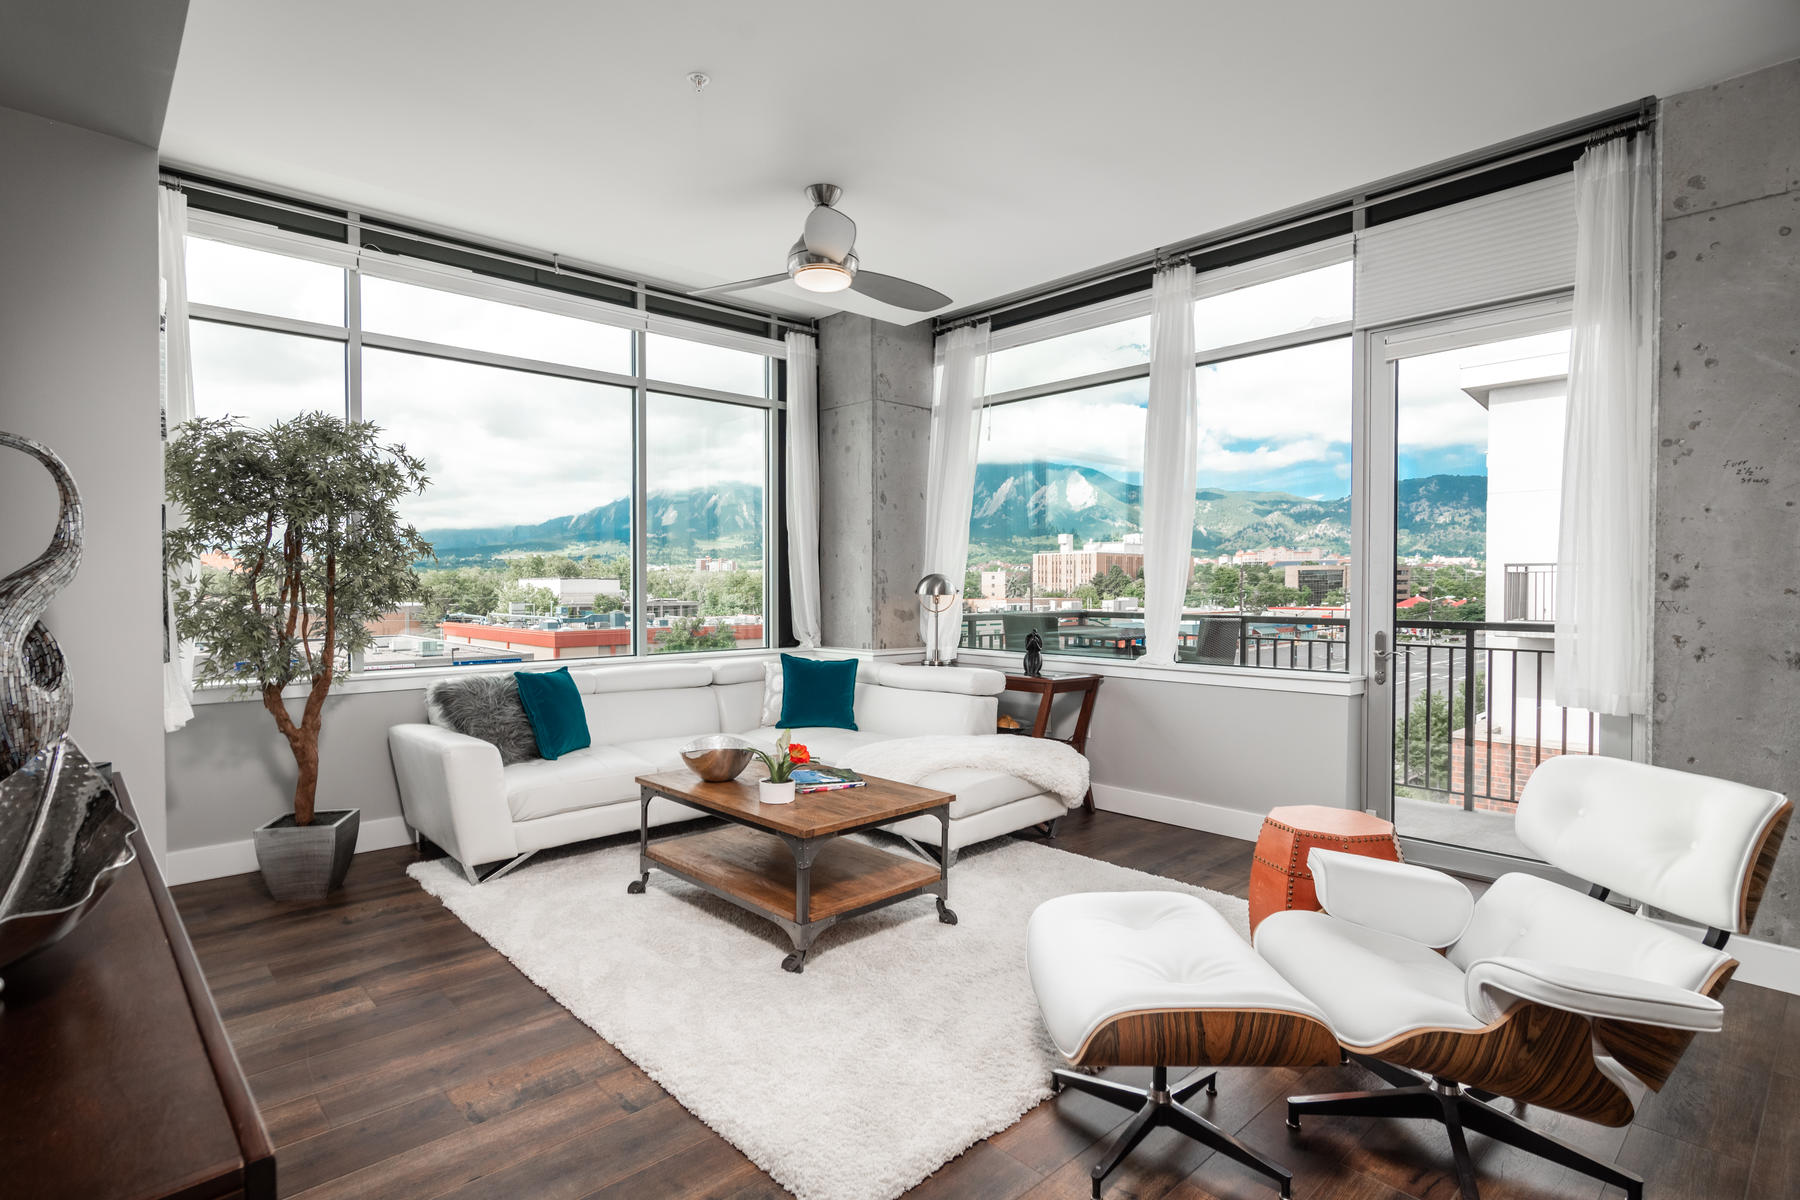 Condominiums for Sale at Luxurious Penthouse Condo 3601 Arapahoe Ave 432, Boulder, Colorado 80303 United States